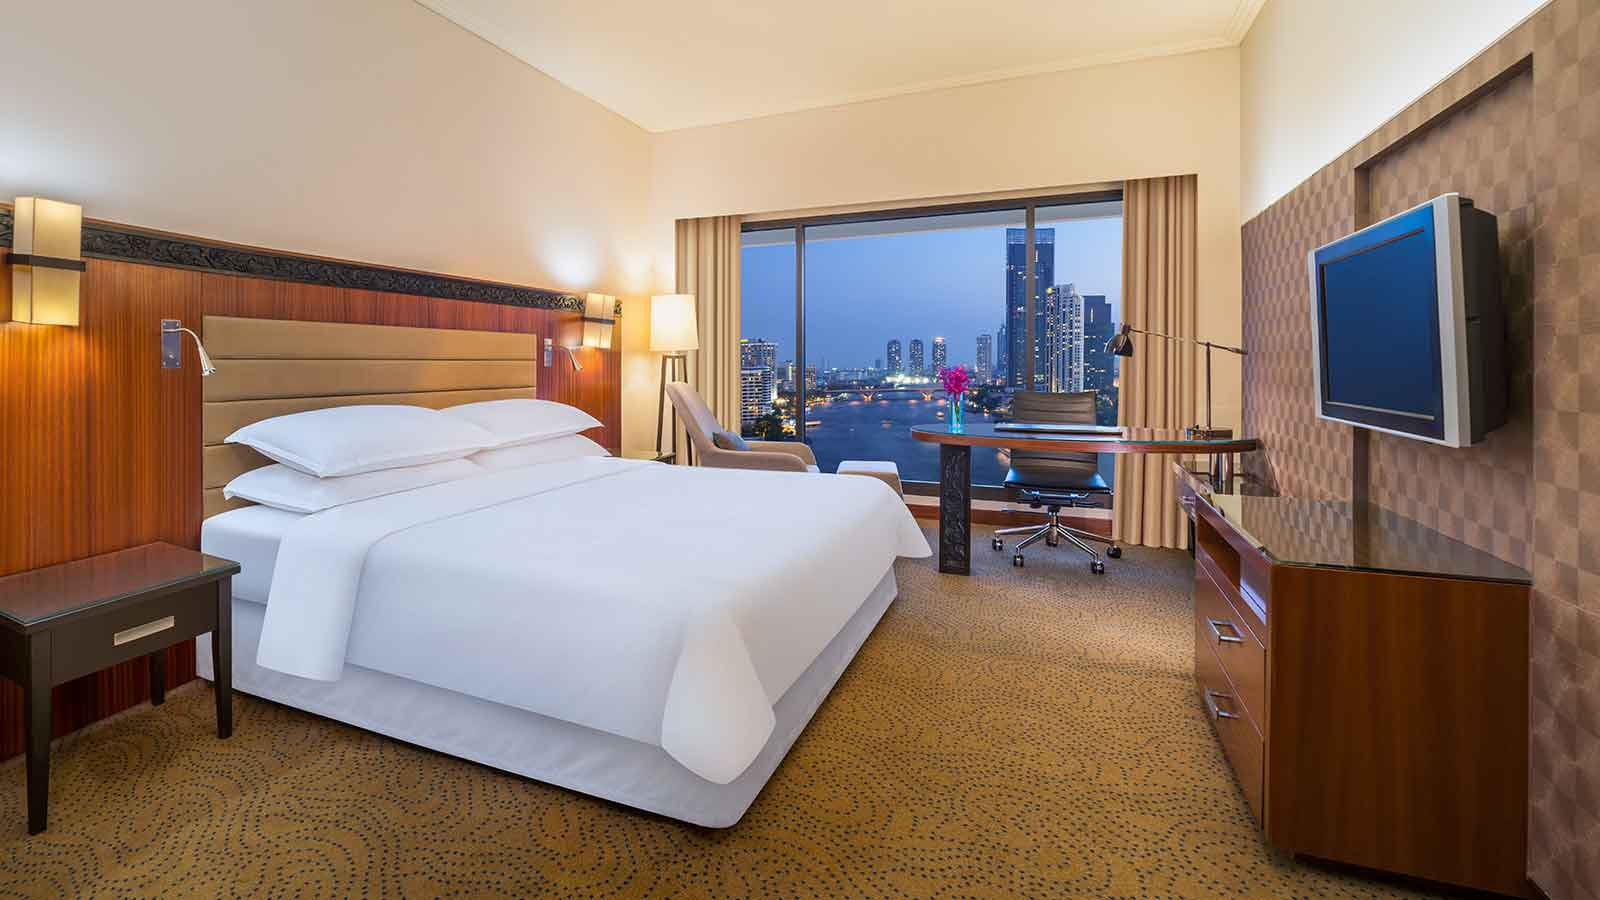 Premium Deluxe Riverview Room - Royal Orchid Sheraton Hotel